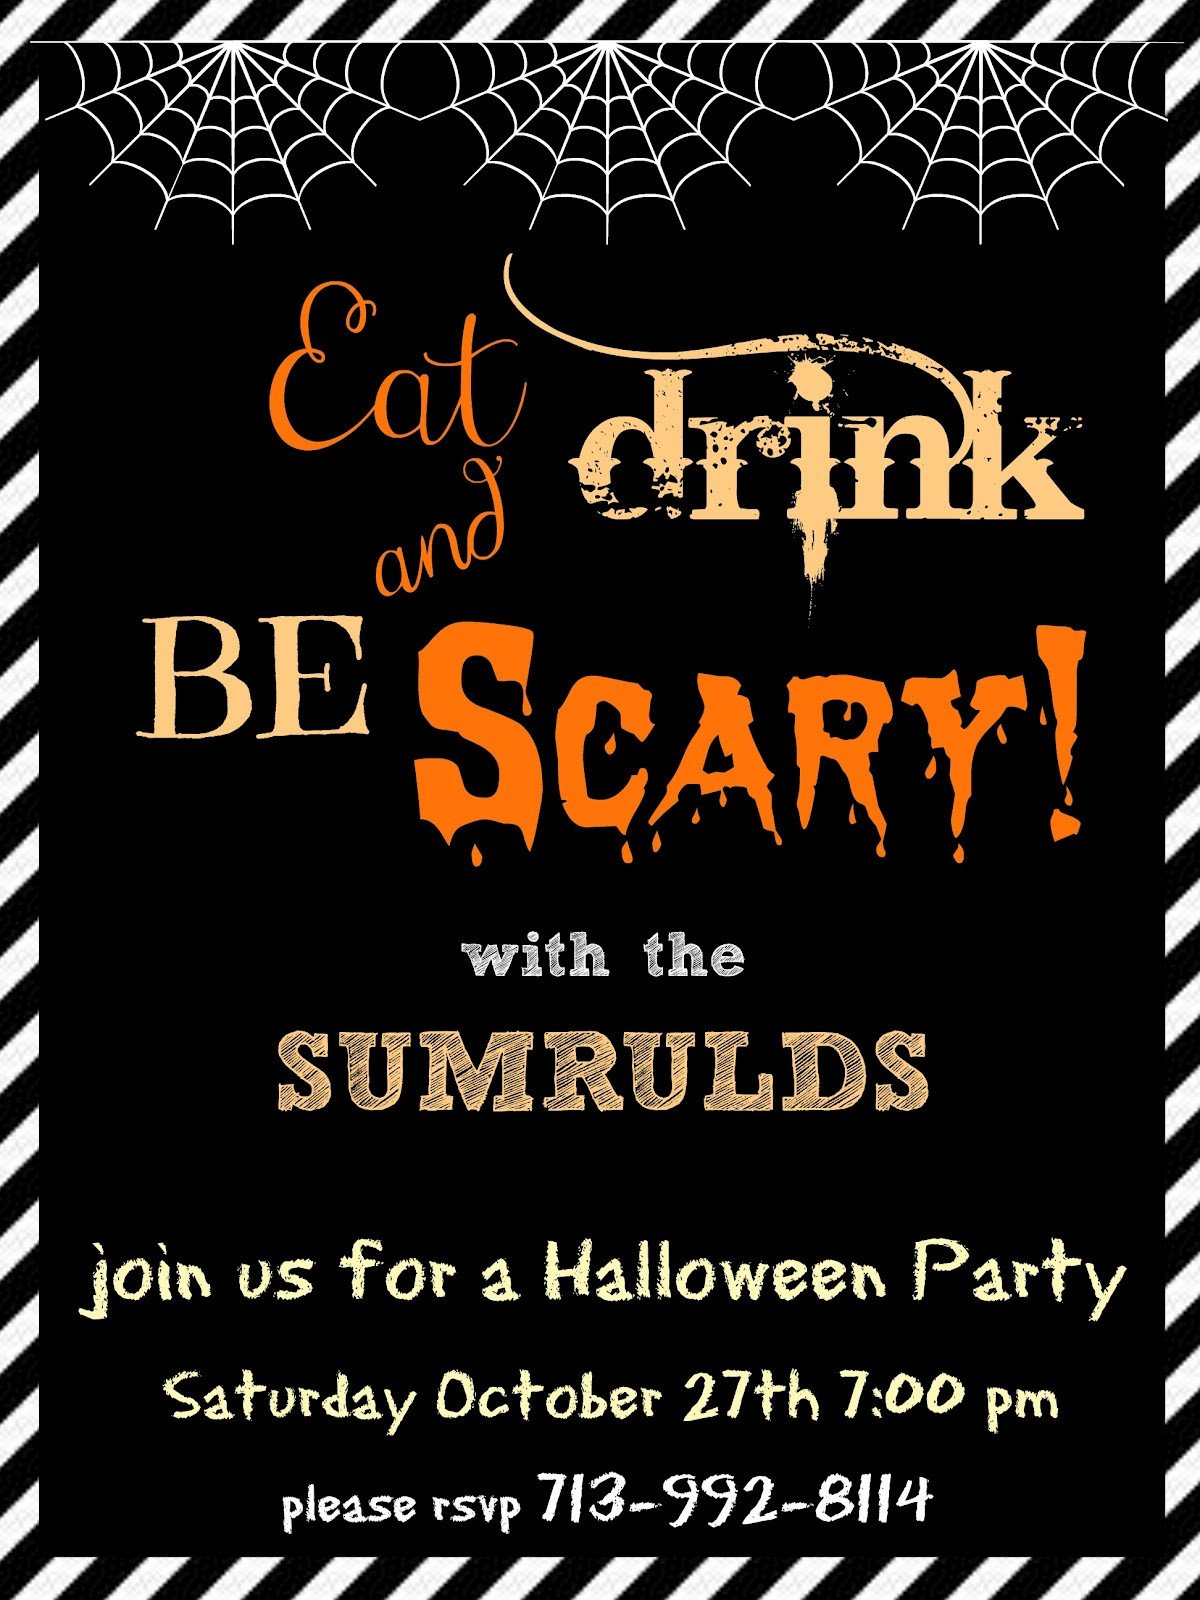 Halloween Party Invitation Templates Halloween Party Invitation Templates Free – Festival